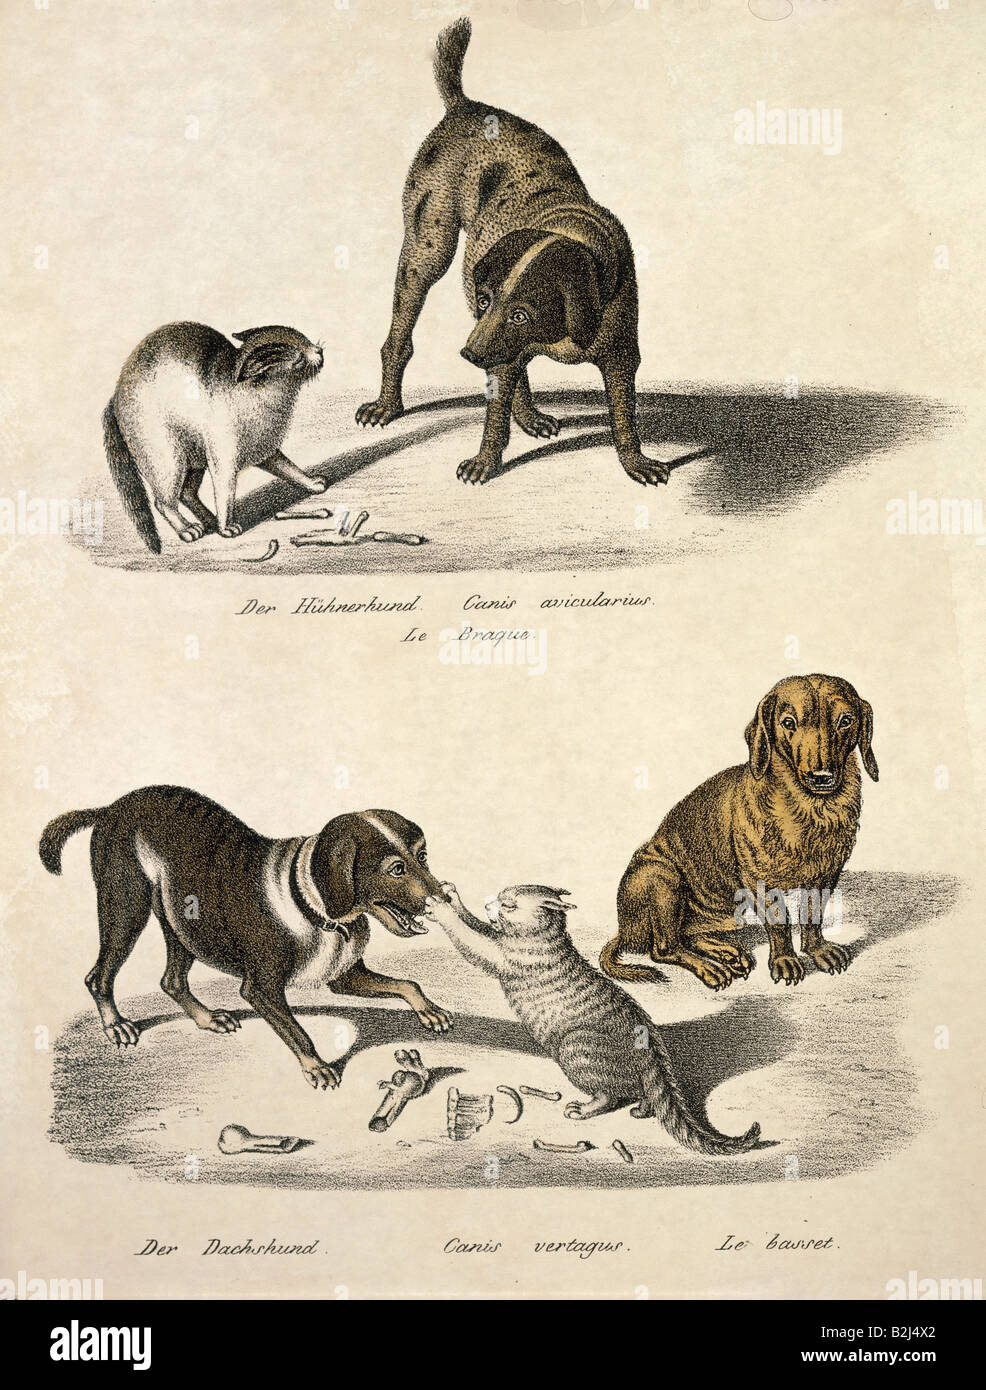 zoology / animal, mammal / mammalian, dogs, above: pointer (Canis avicularius), below: dachshund (Canis vertagus), - Stock Image